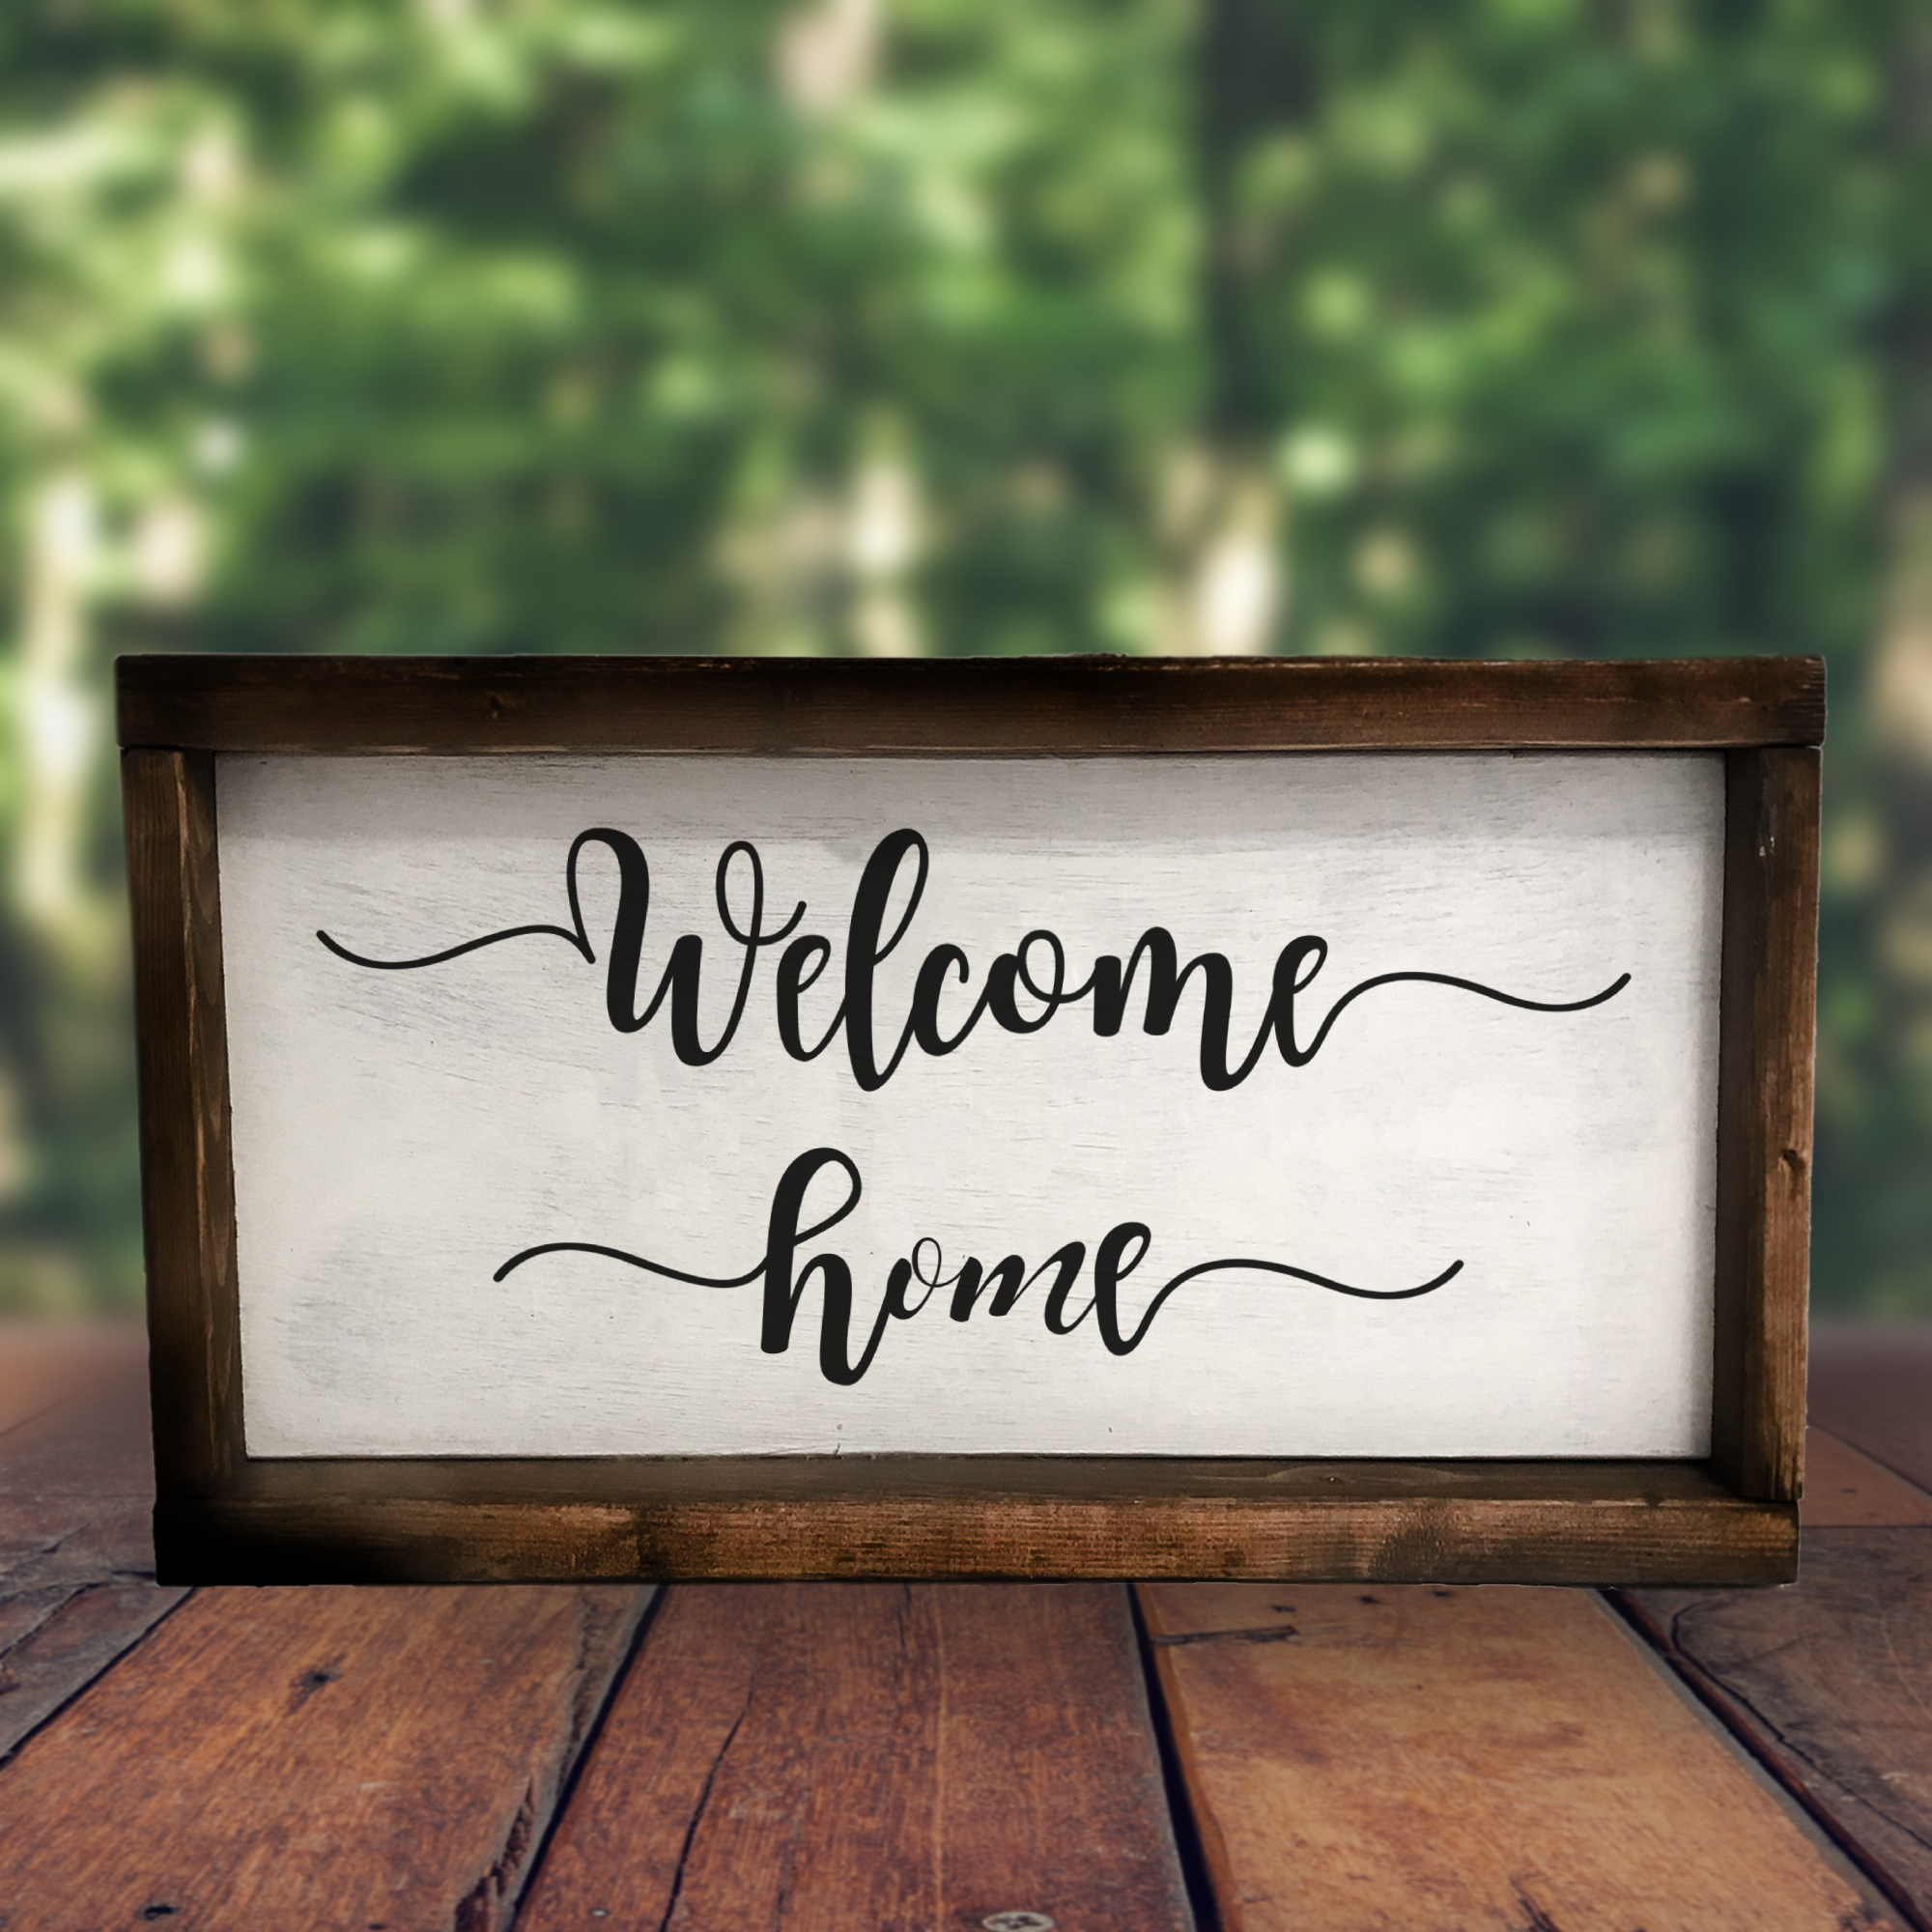 Welcome Home SVG - Living Room SVG - Home Decor SVG example image 2